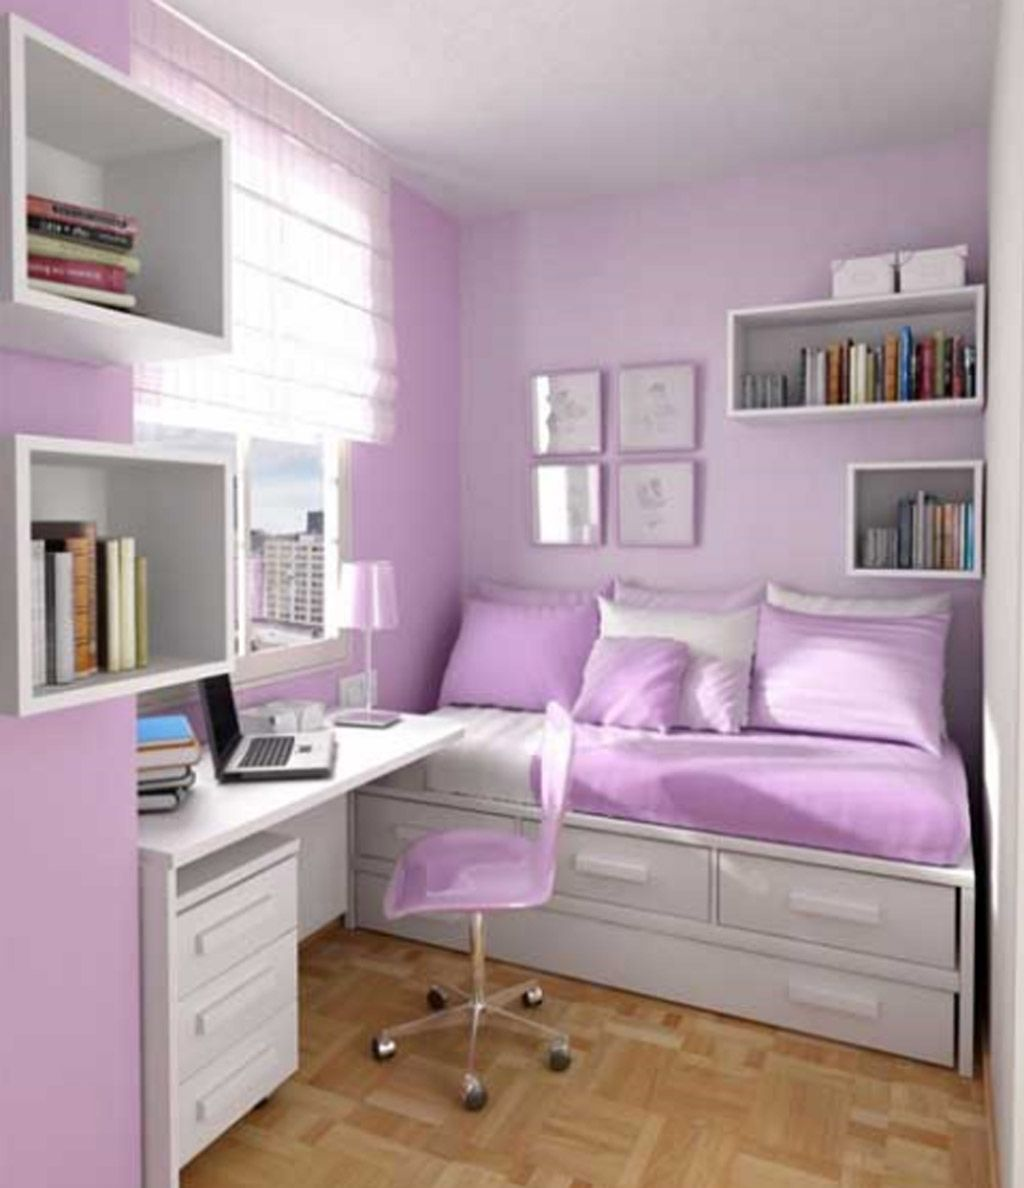 decor for teenage bedrooms | room decorating ideas, light purple